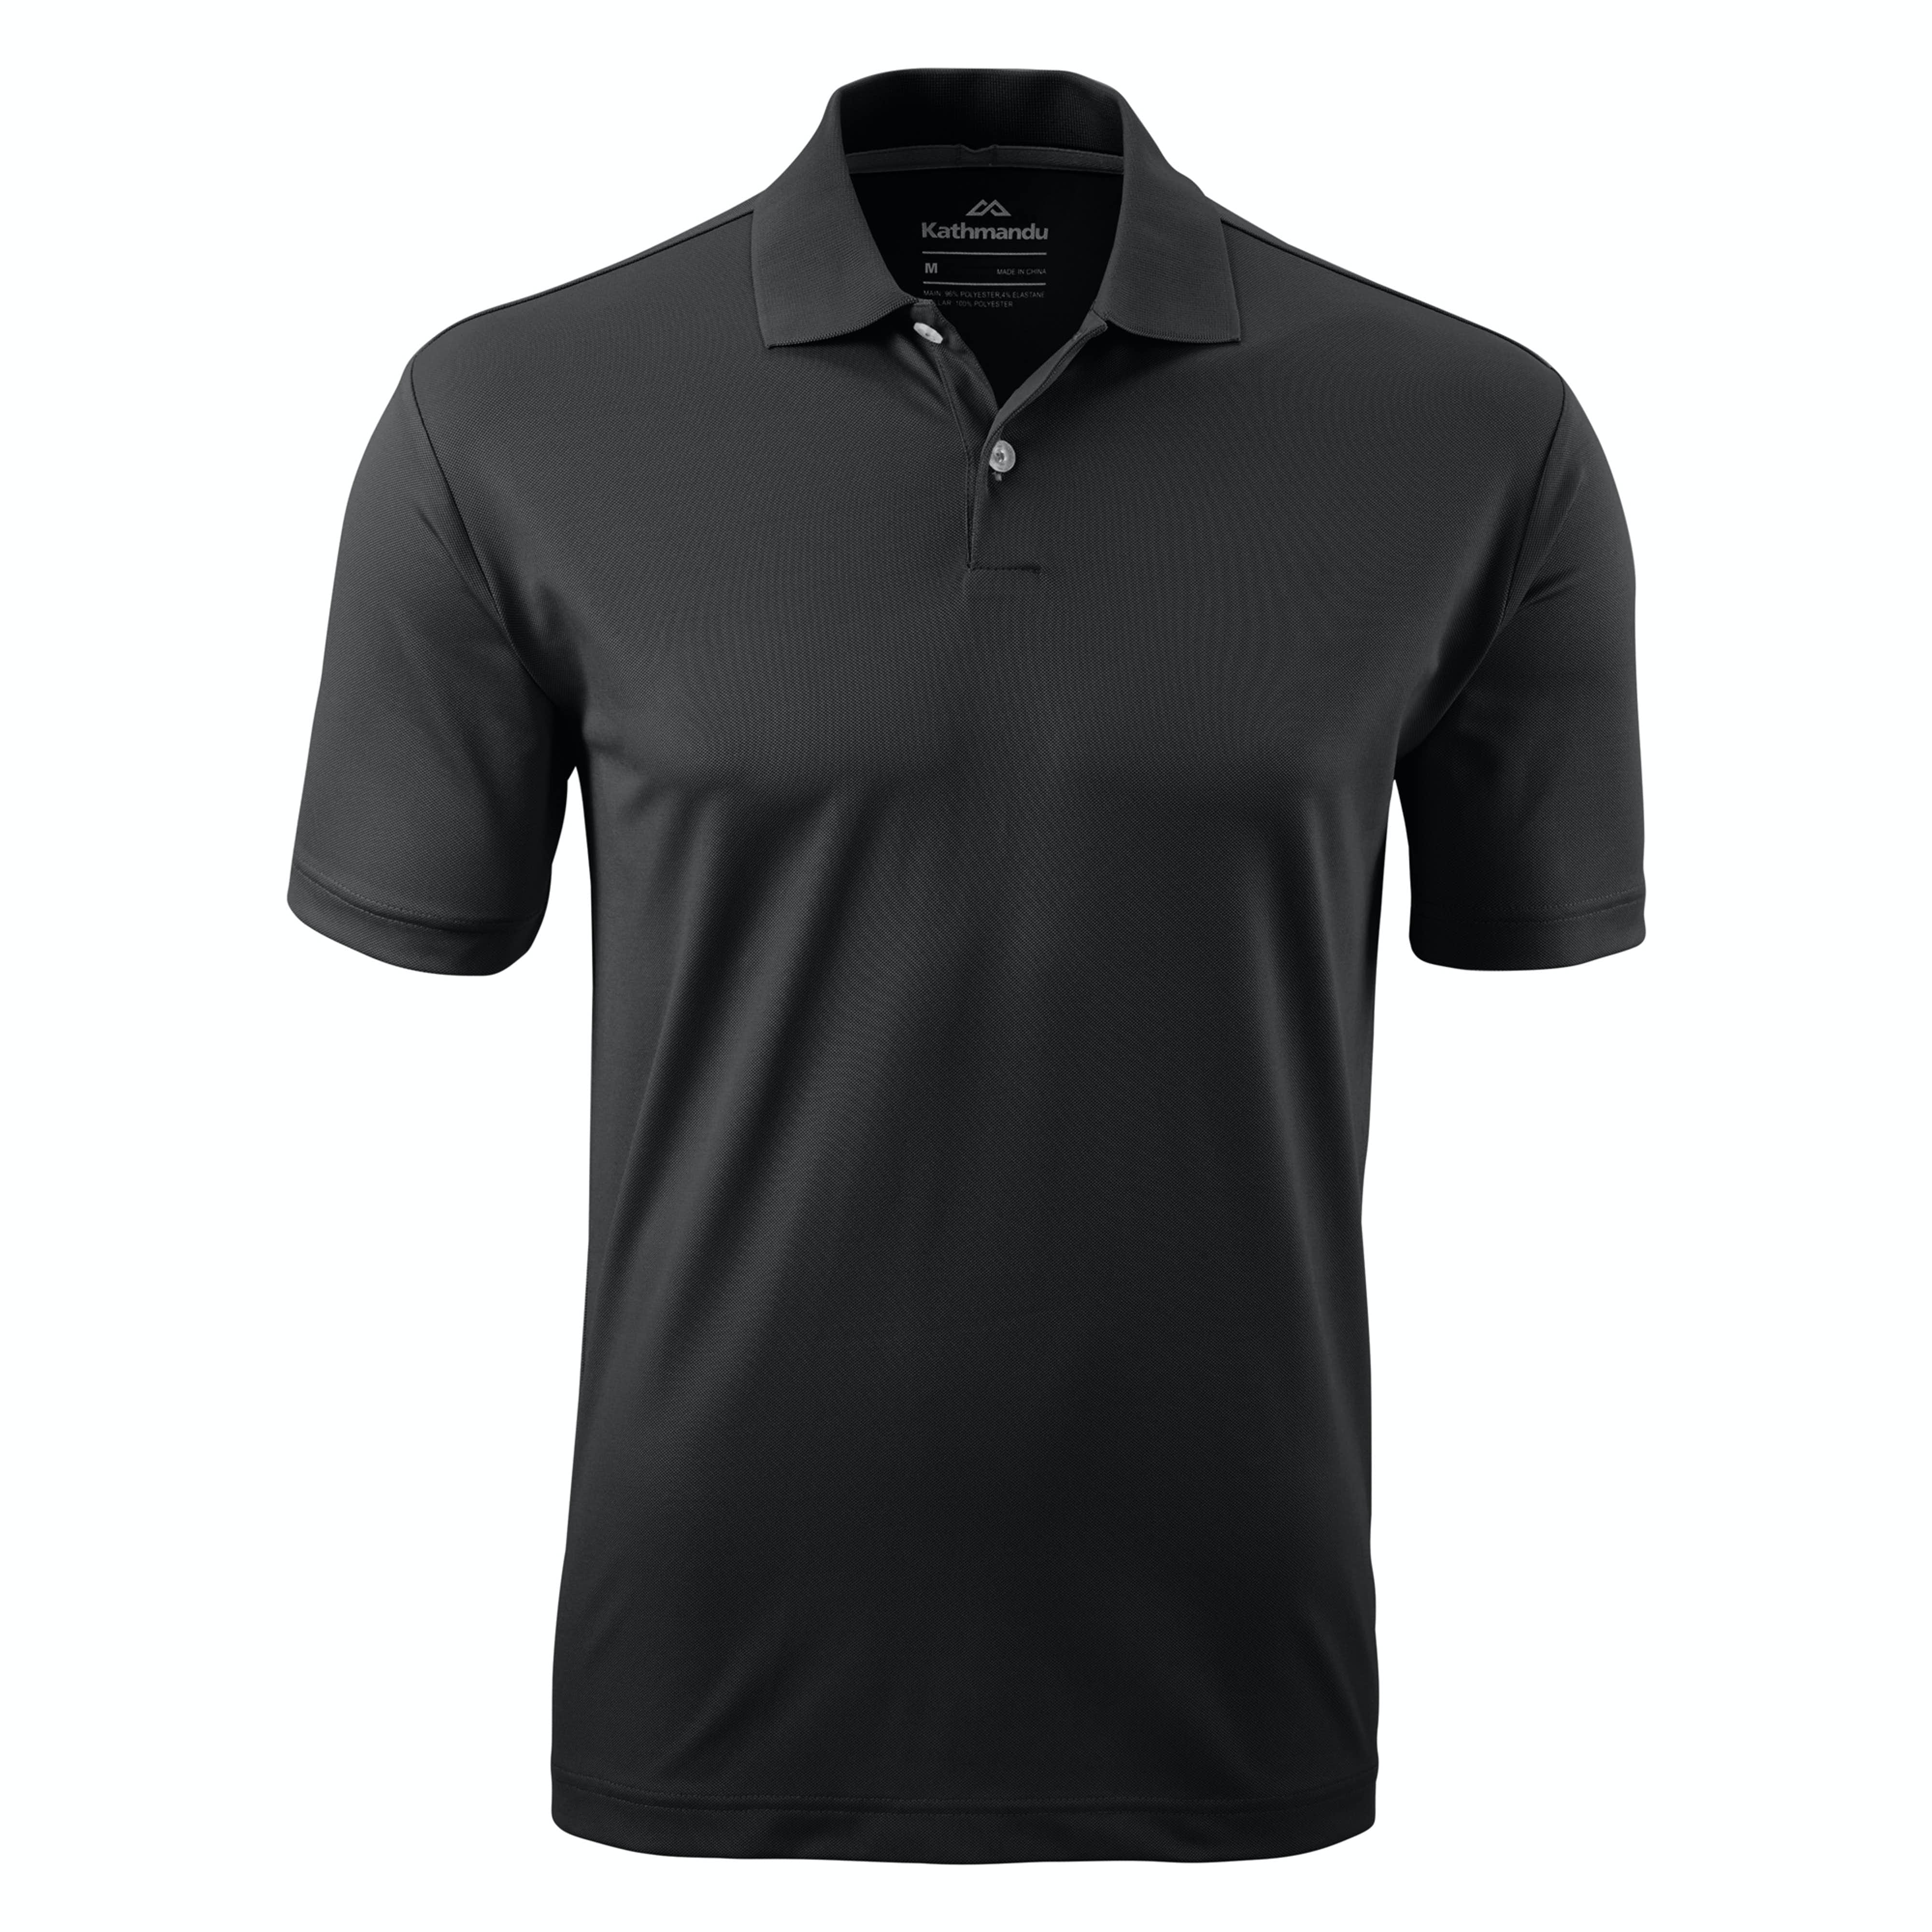 b5ff5b03a86a Men's T-Shirts, Casual Shirts & Polos   Hoodies, Sweaters For Men